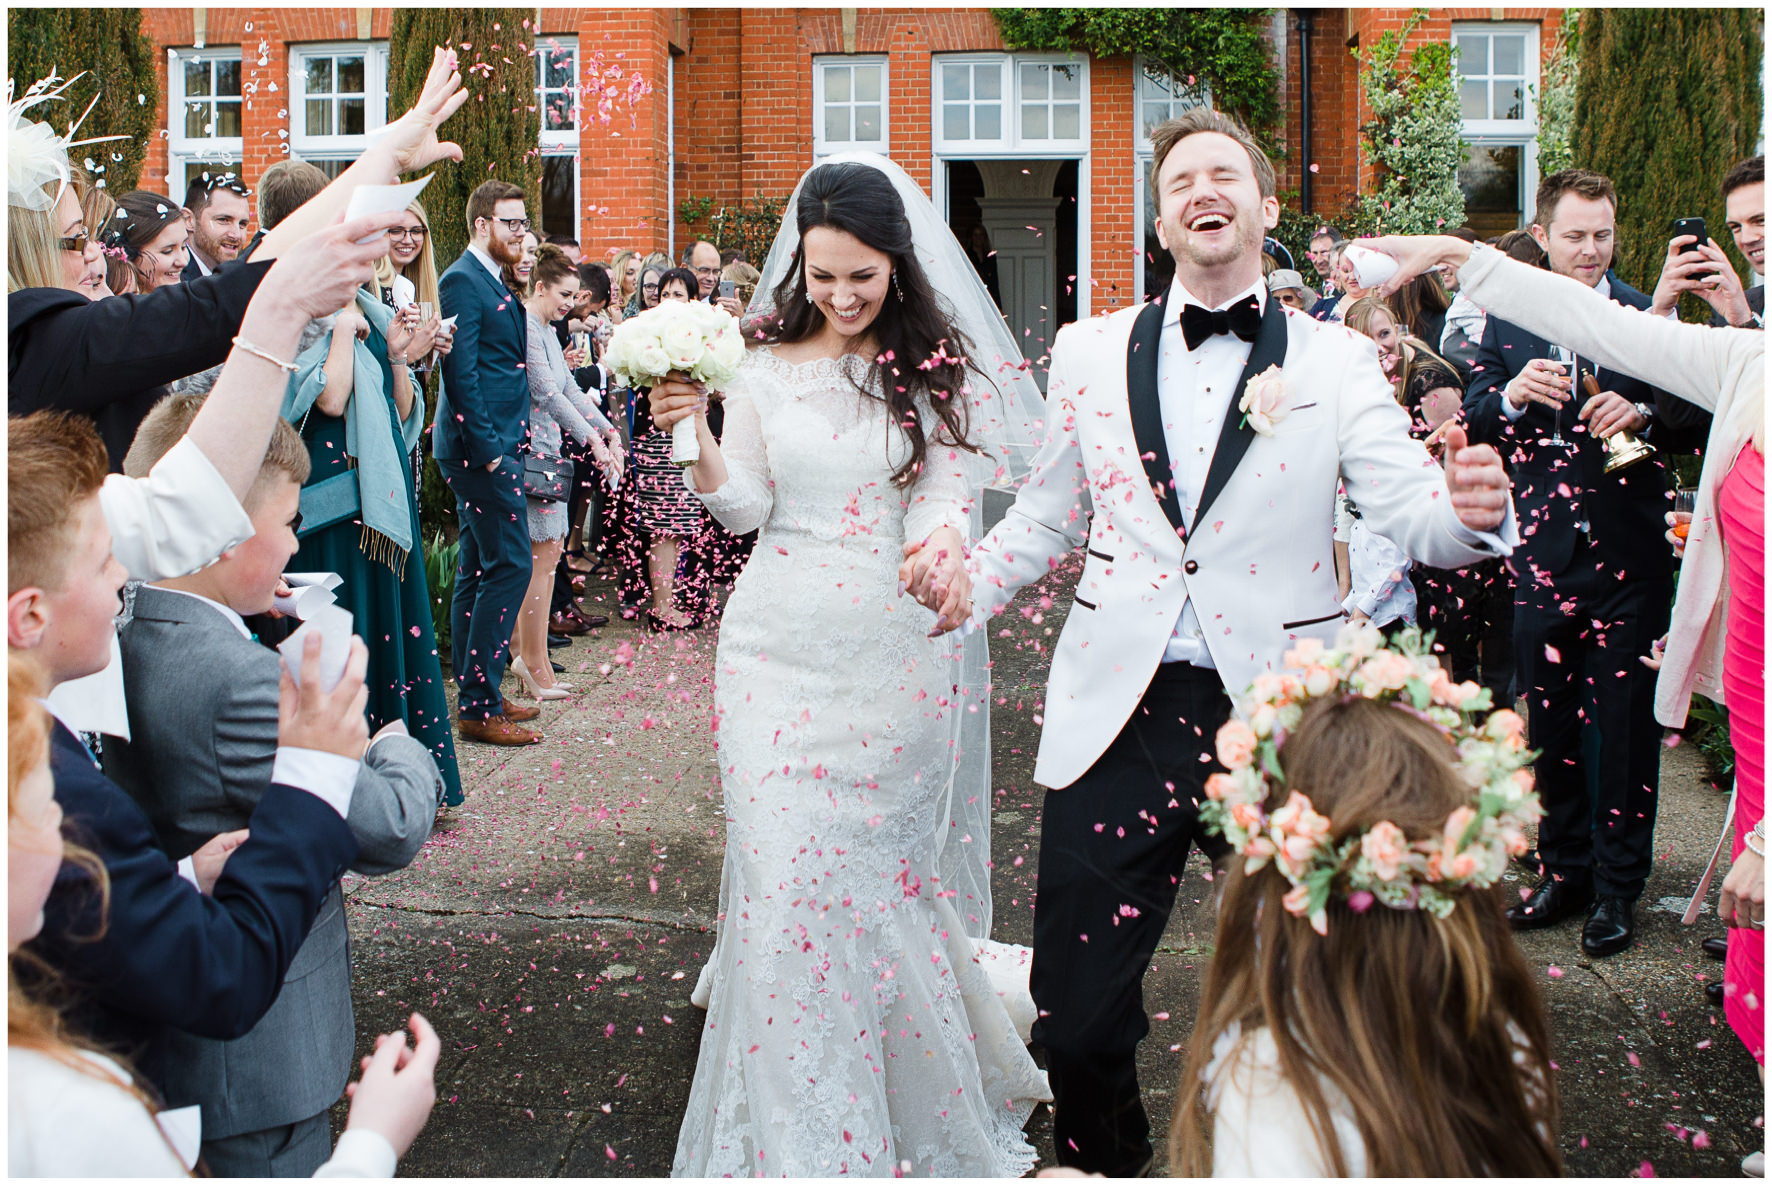 Lucy Davenport Photography, Katrina Otter Weddings, Chippenham Park, confetti, confetti tunnel, bride and groom